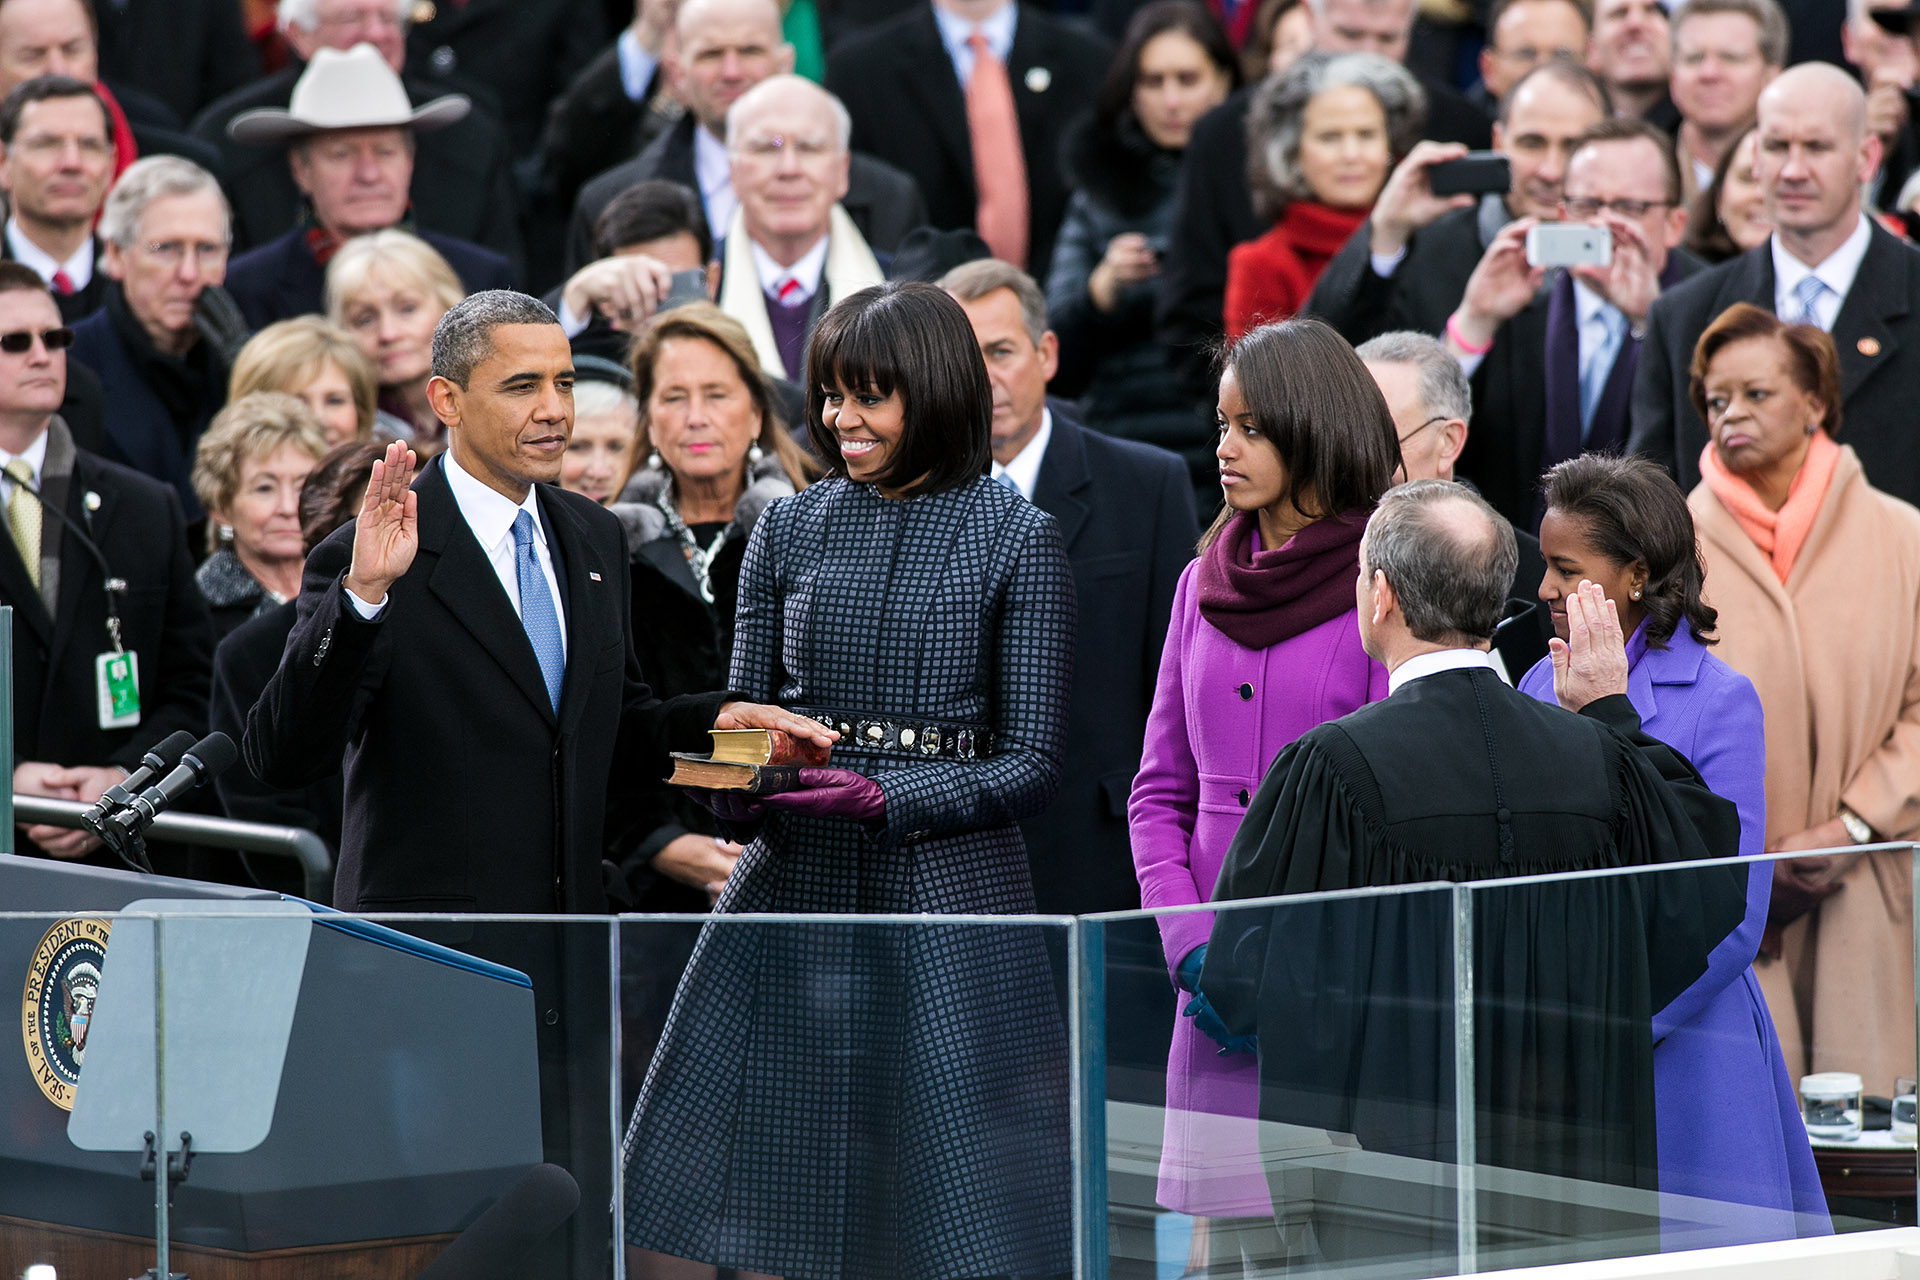 Barack Obama holds up his right hand as he's sworn in as POTUS